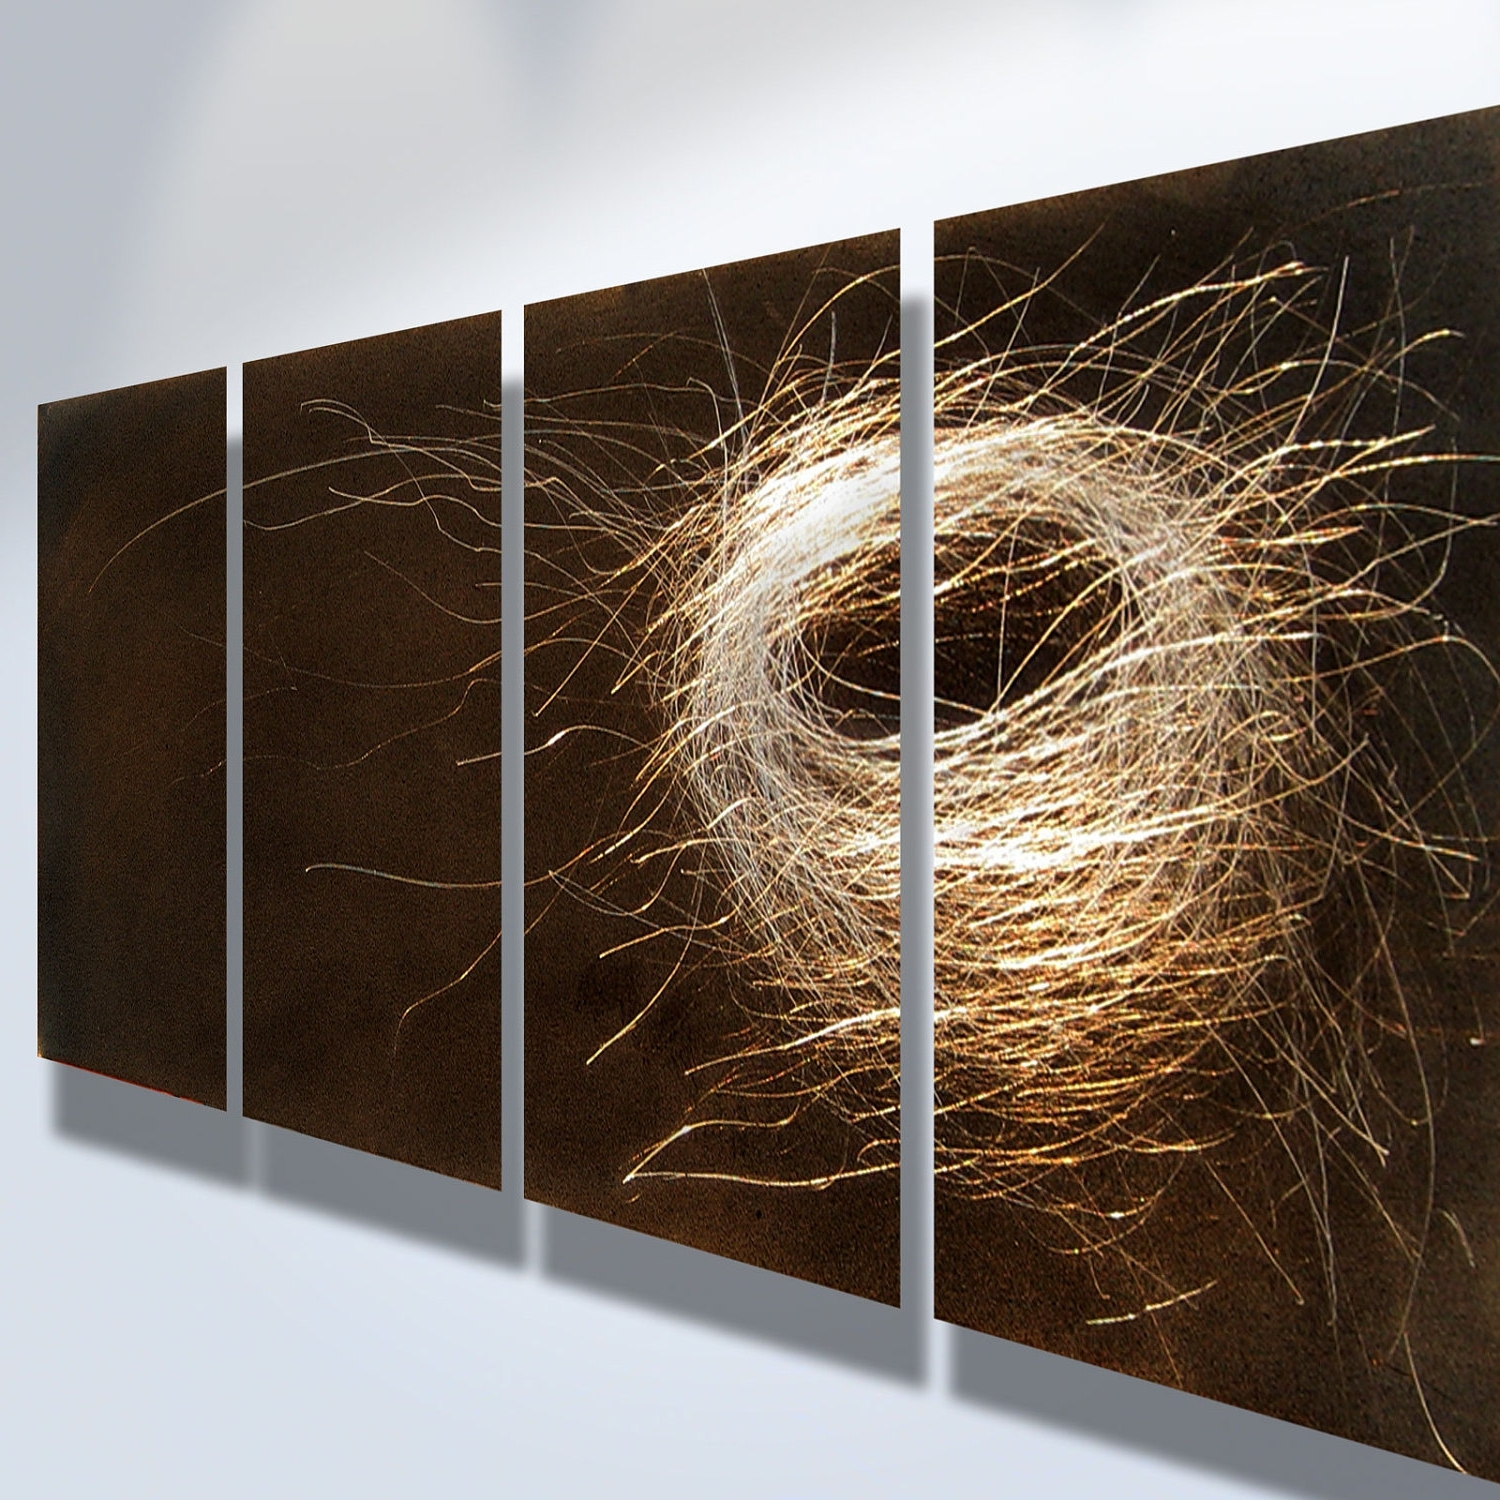 Widely Used Metal Art Wall Art Decor Abstract Contemporary Modern Sculpture Pertaining To Contemporary Metal Wall Art Sculpture (View 4 of 15)